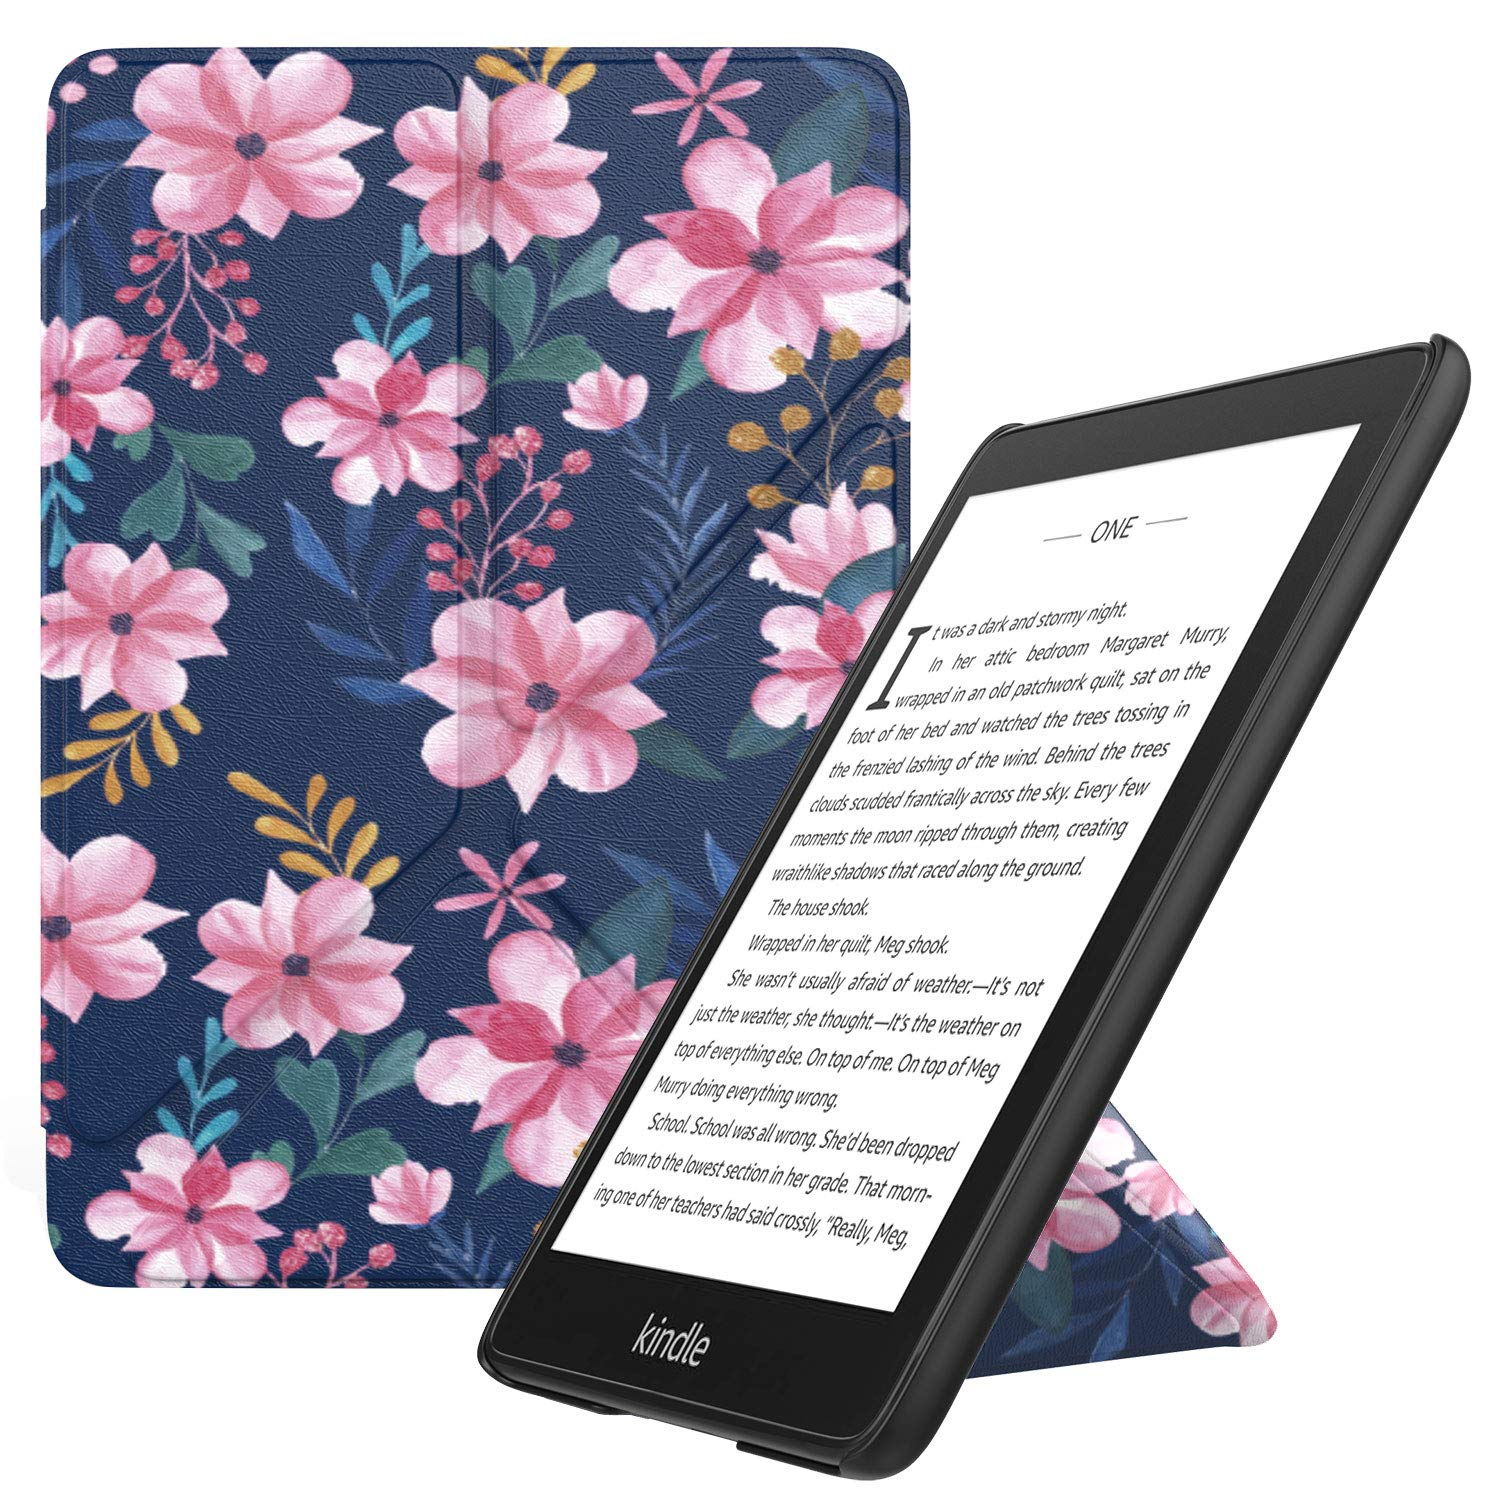 MoKo Case Replacement with Kindle Paperwhite (10th Generation, 2018 Releases), Standing Origami Slim Shell Cover with Auto Wake/Sleep Fits Kindle Paperwhite E-Reader - Blue & Pink Flower